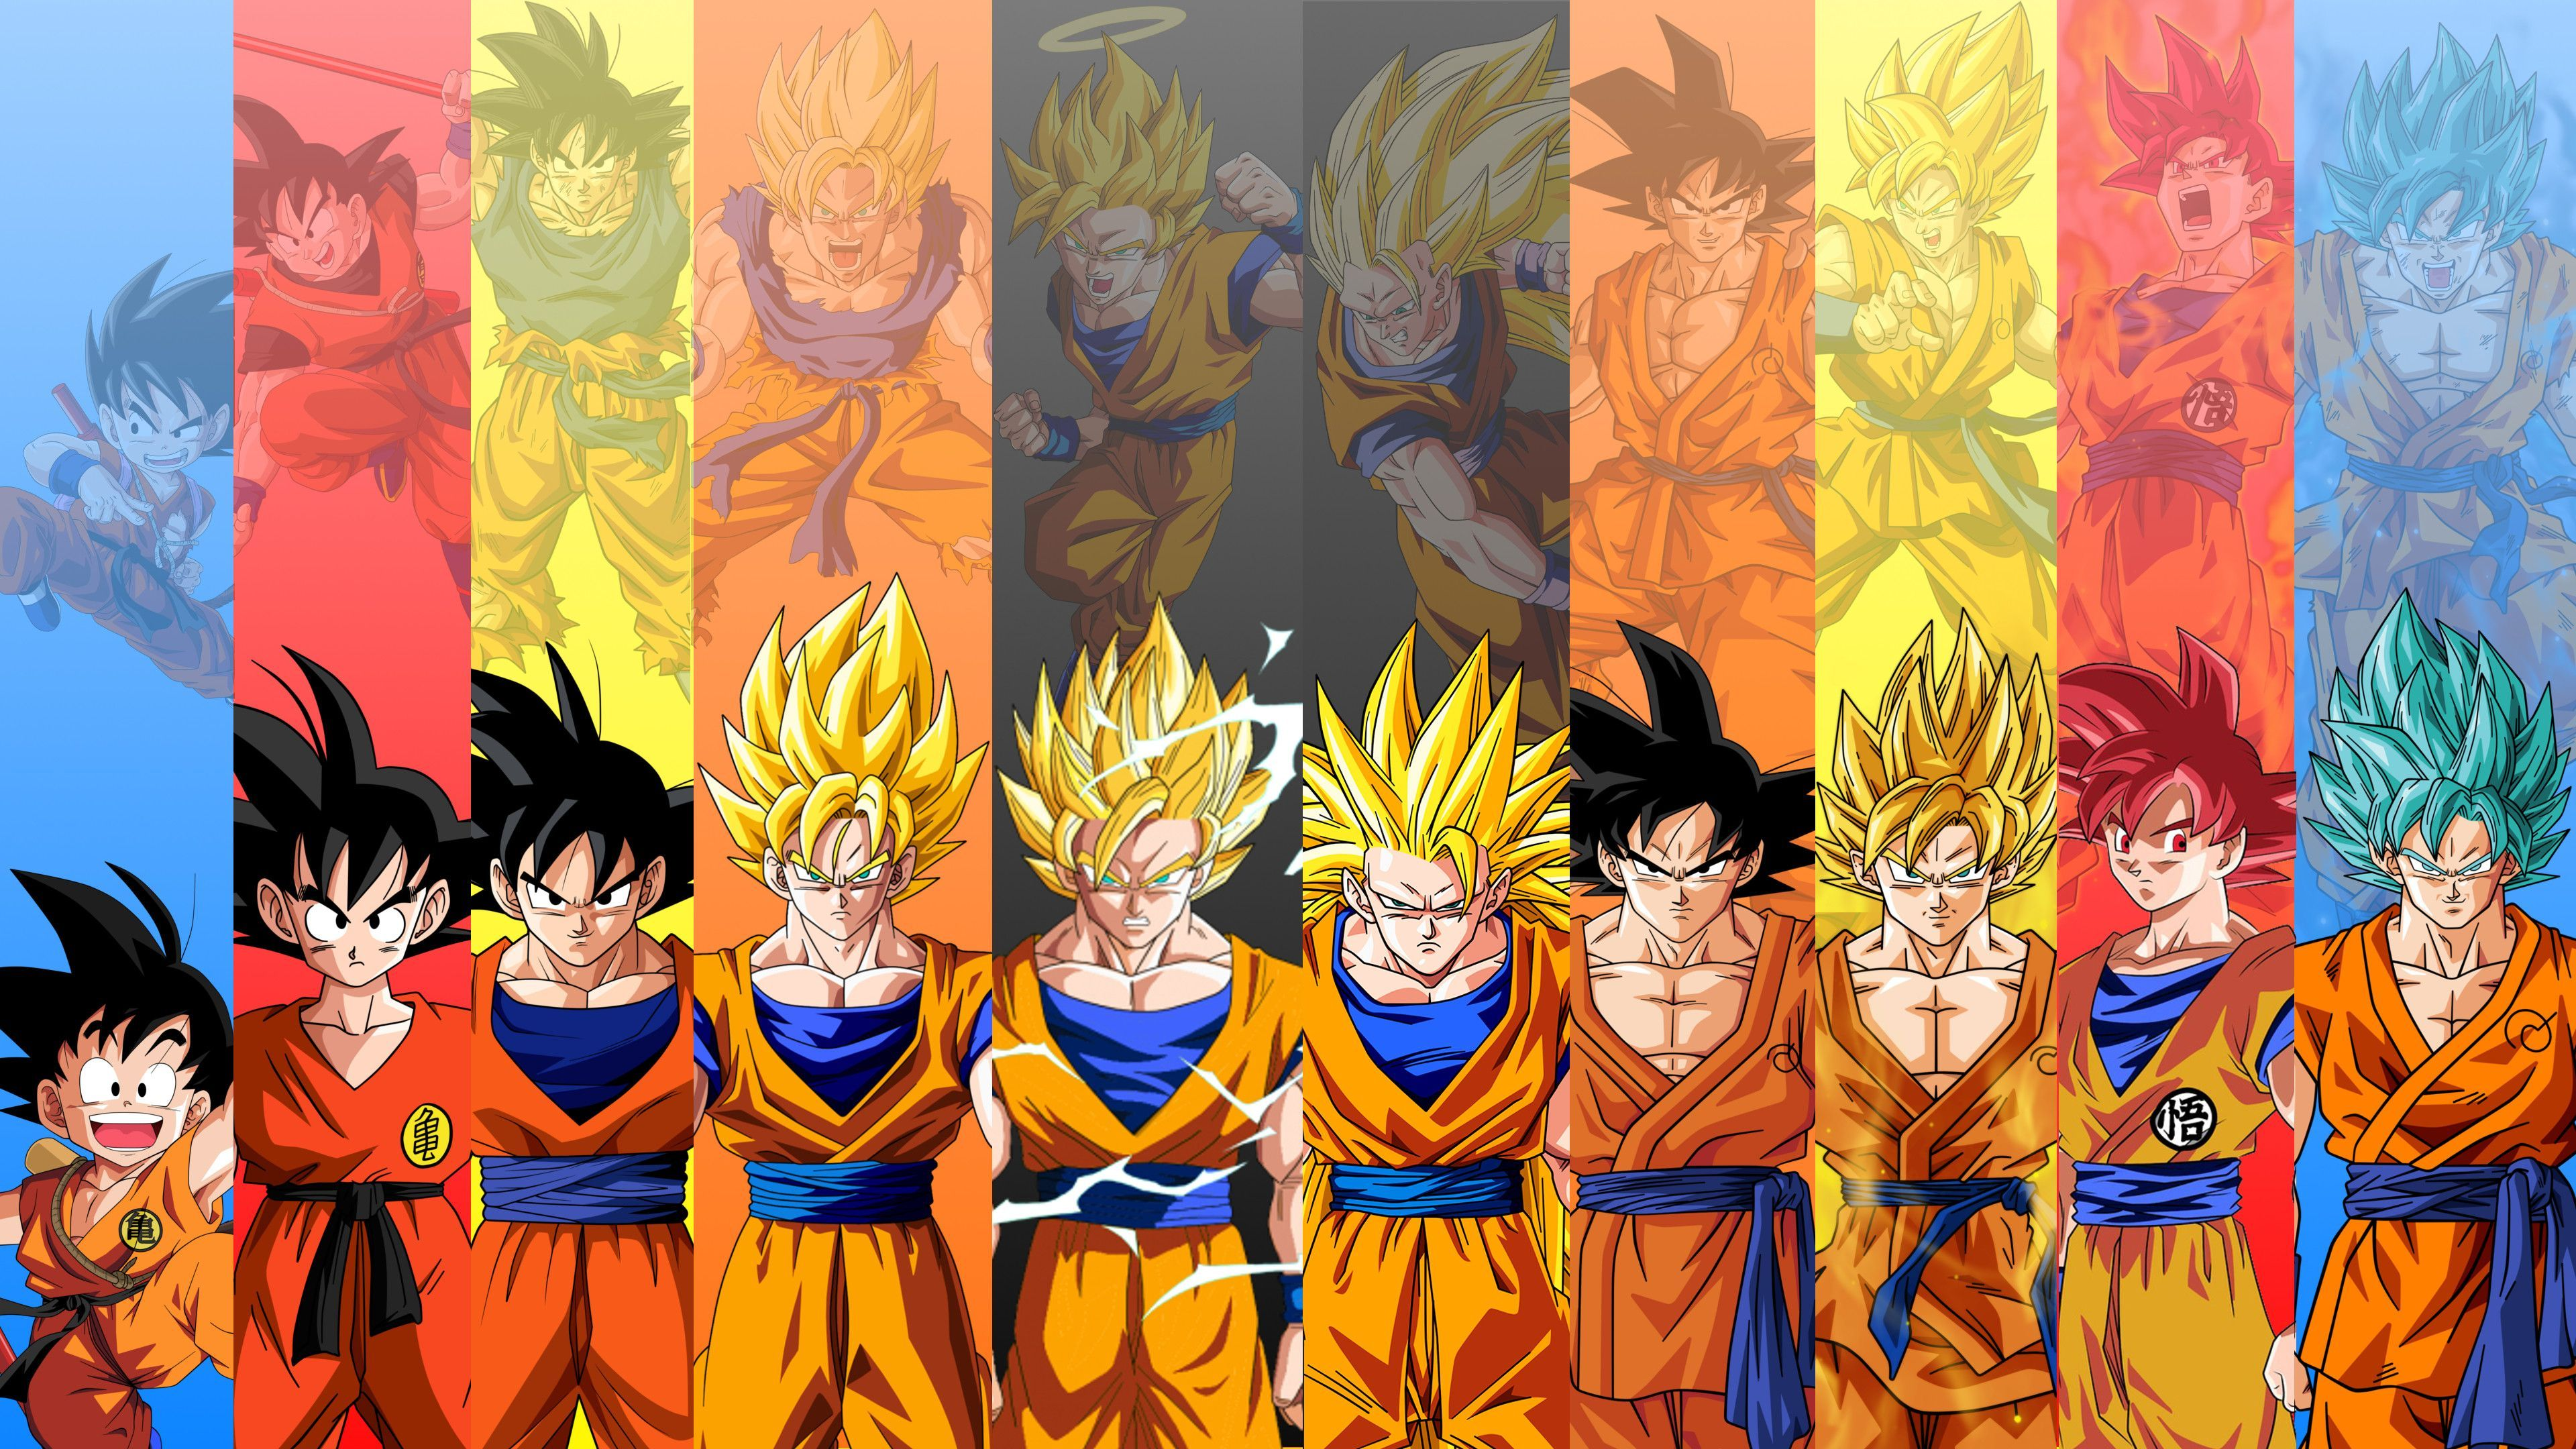 All goku forms wallpapers top free all goku forms - Dragon ball gt goku wallpaper ...